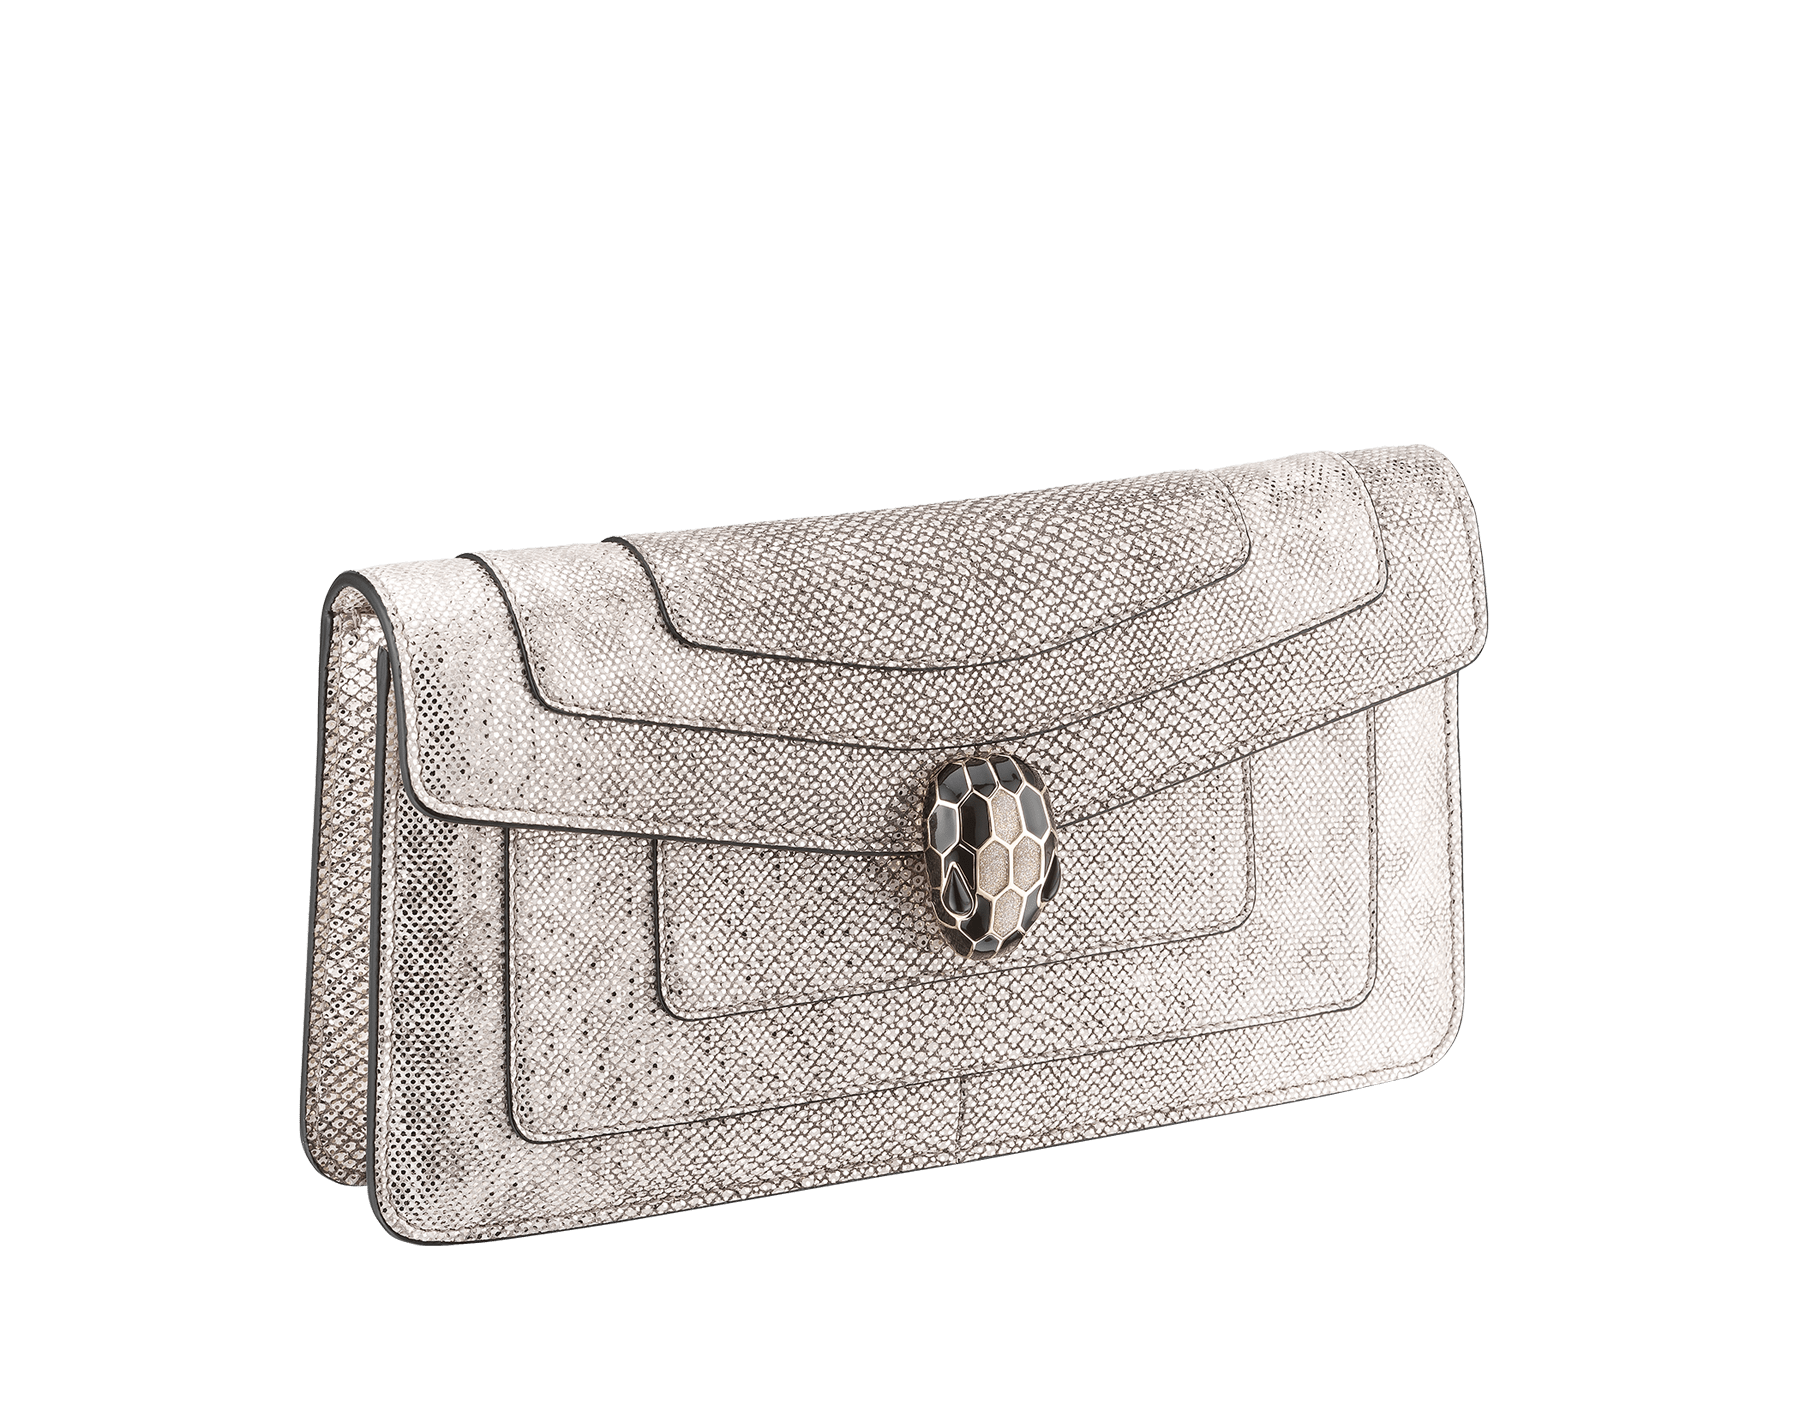 Serpenti Forever shoulder bag in milky opal metallic karung skin. Snakehead closure in light gold plated brass decorated with black and glitter milky opal enamel, and black onyx eyes. 287943 image 2